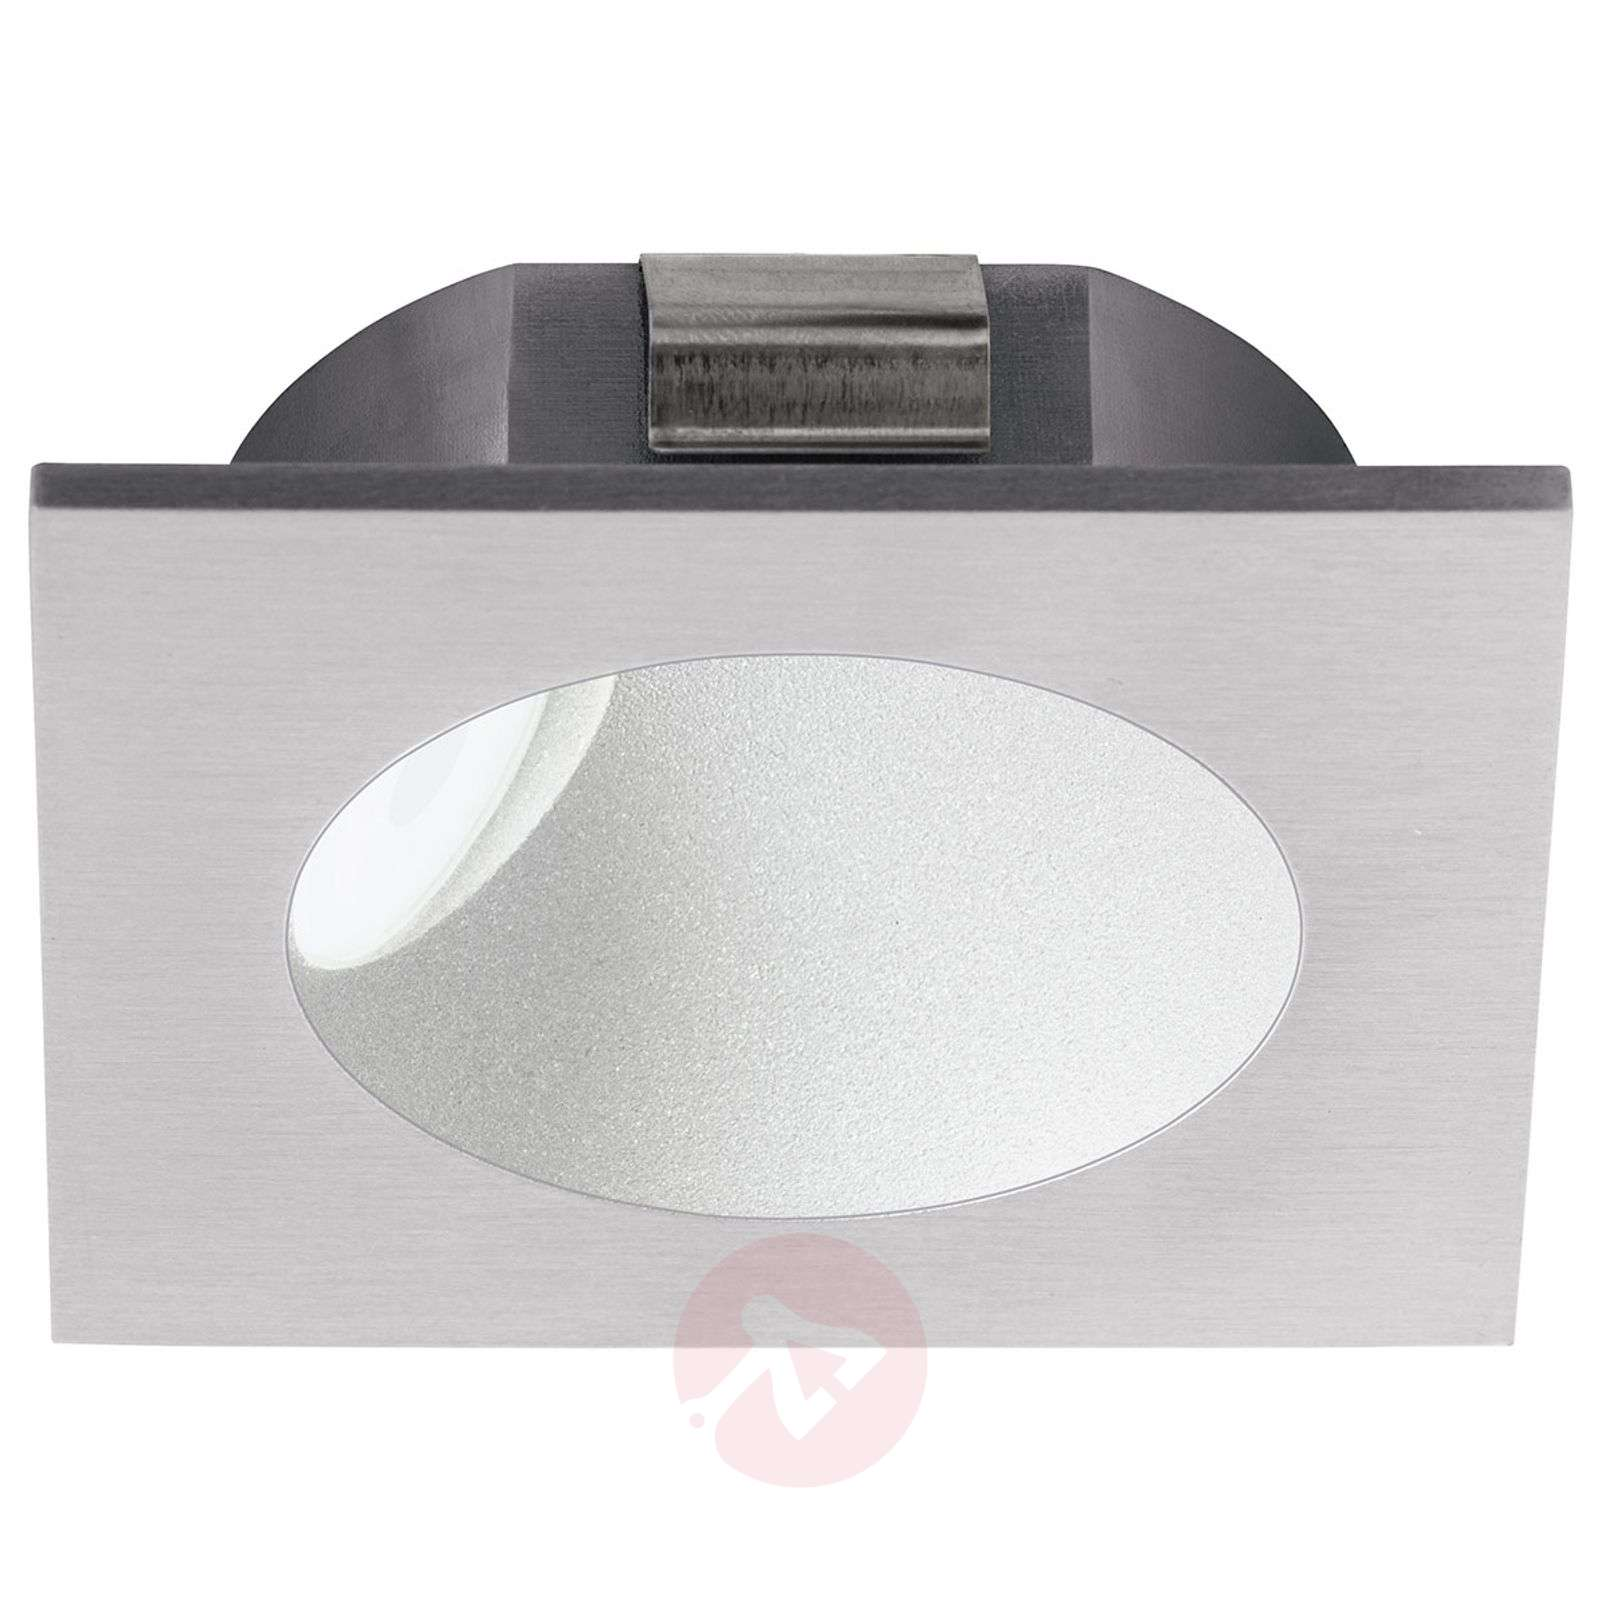 Applique encastrable LED Zarate-3032316X-01